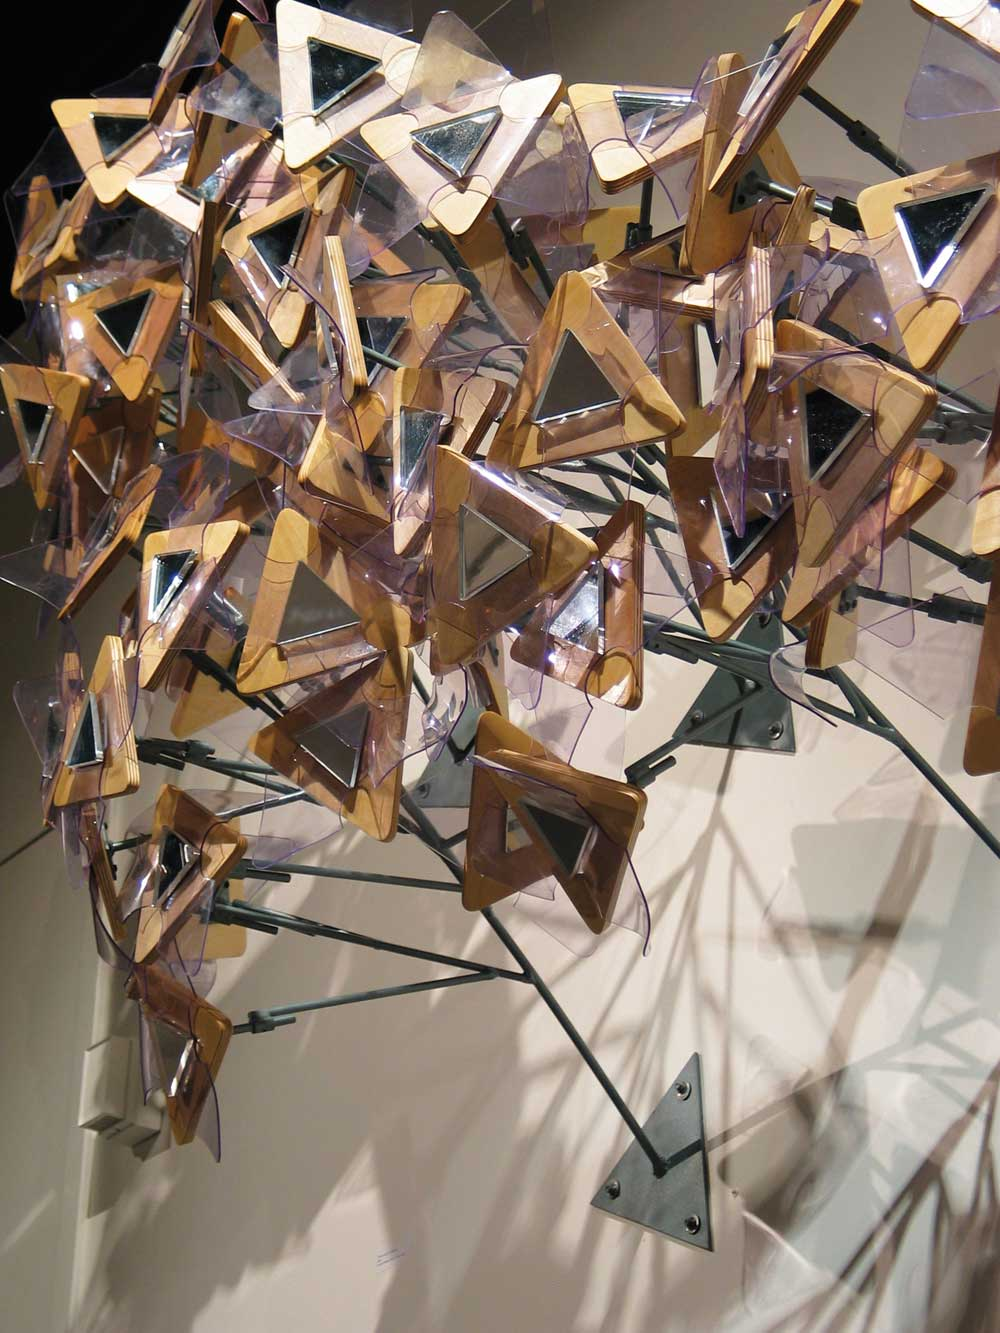 Rick Herzog, Flowering Ivy Shoots (detail), 2006, acrylic mirrors, wood, vinyl, steel.